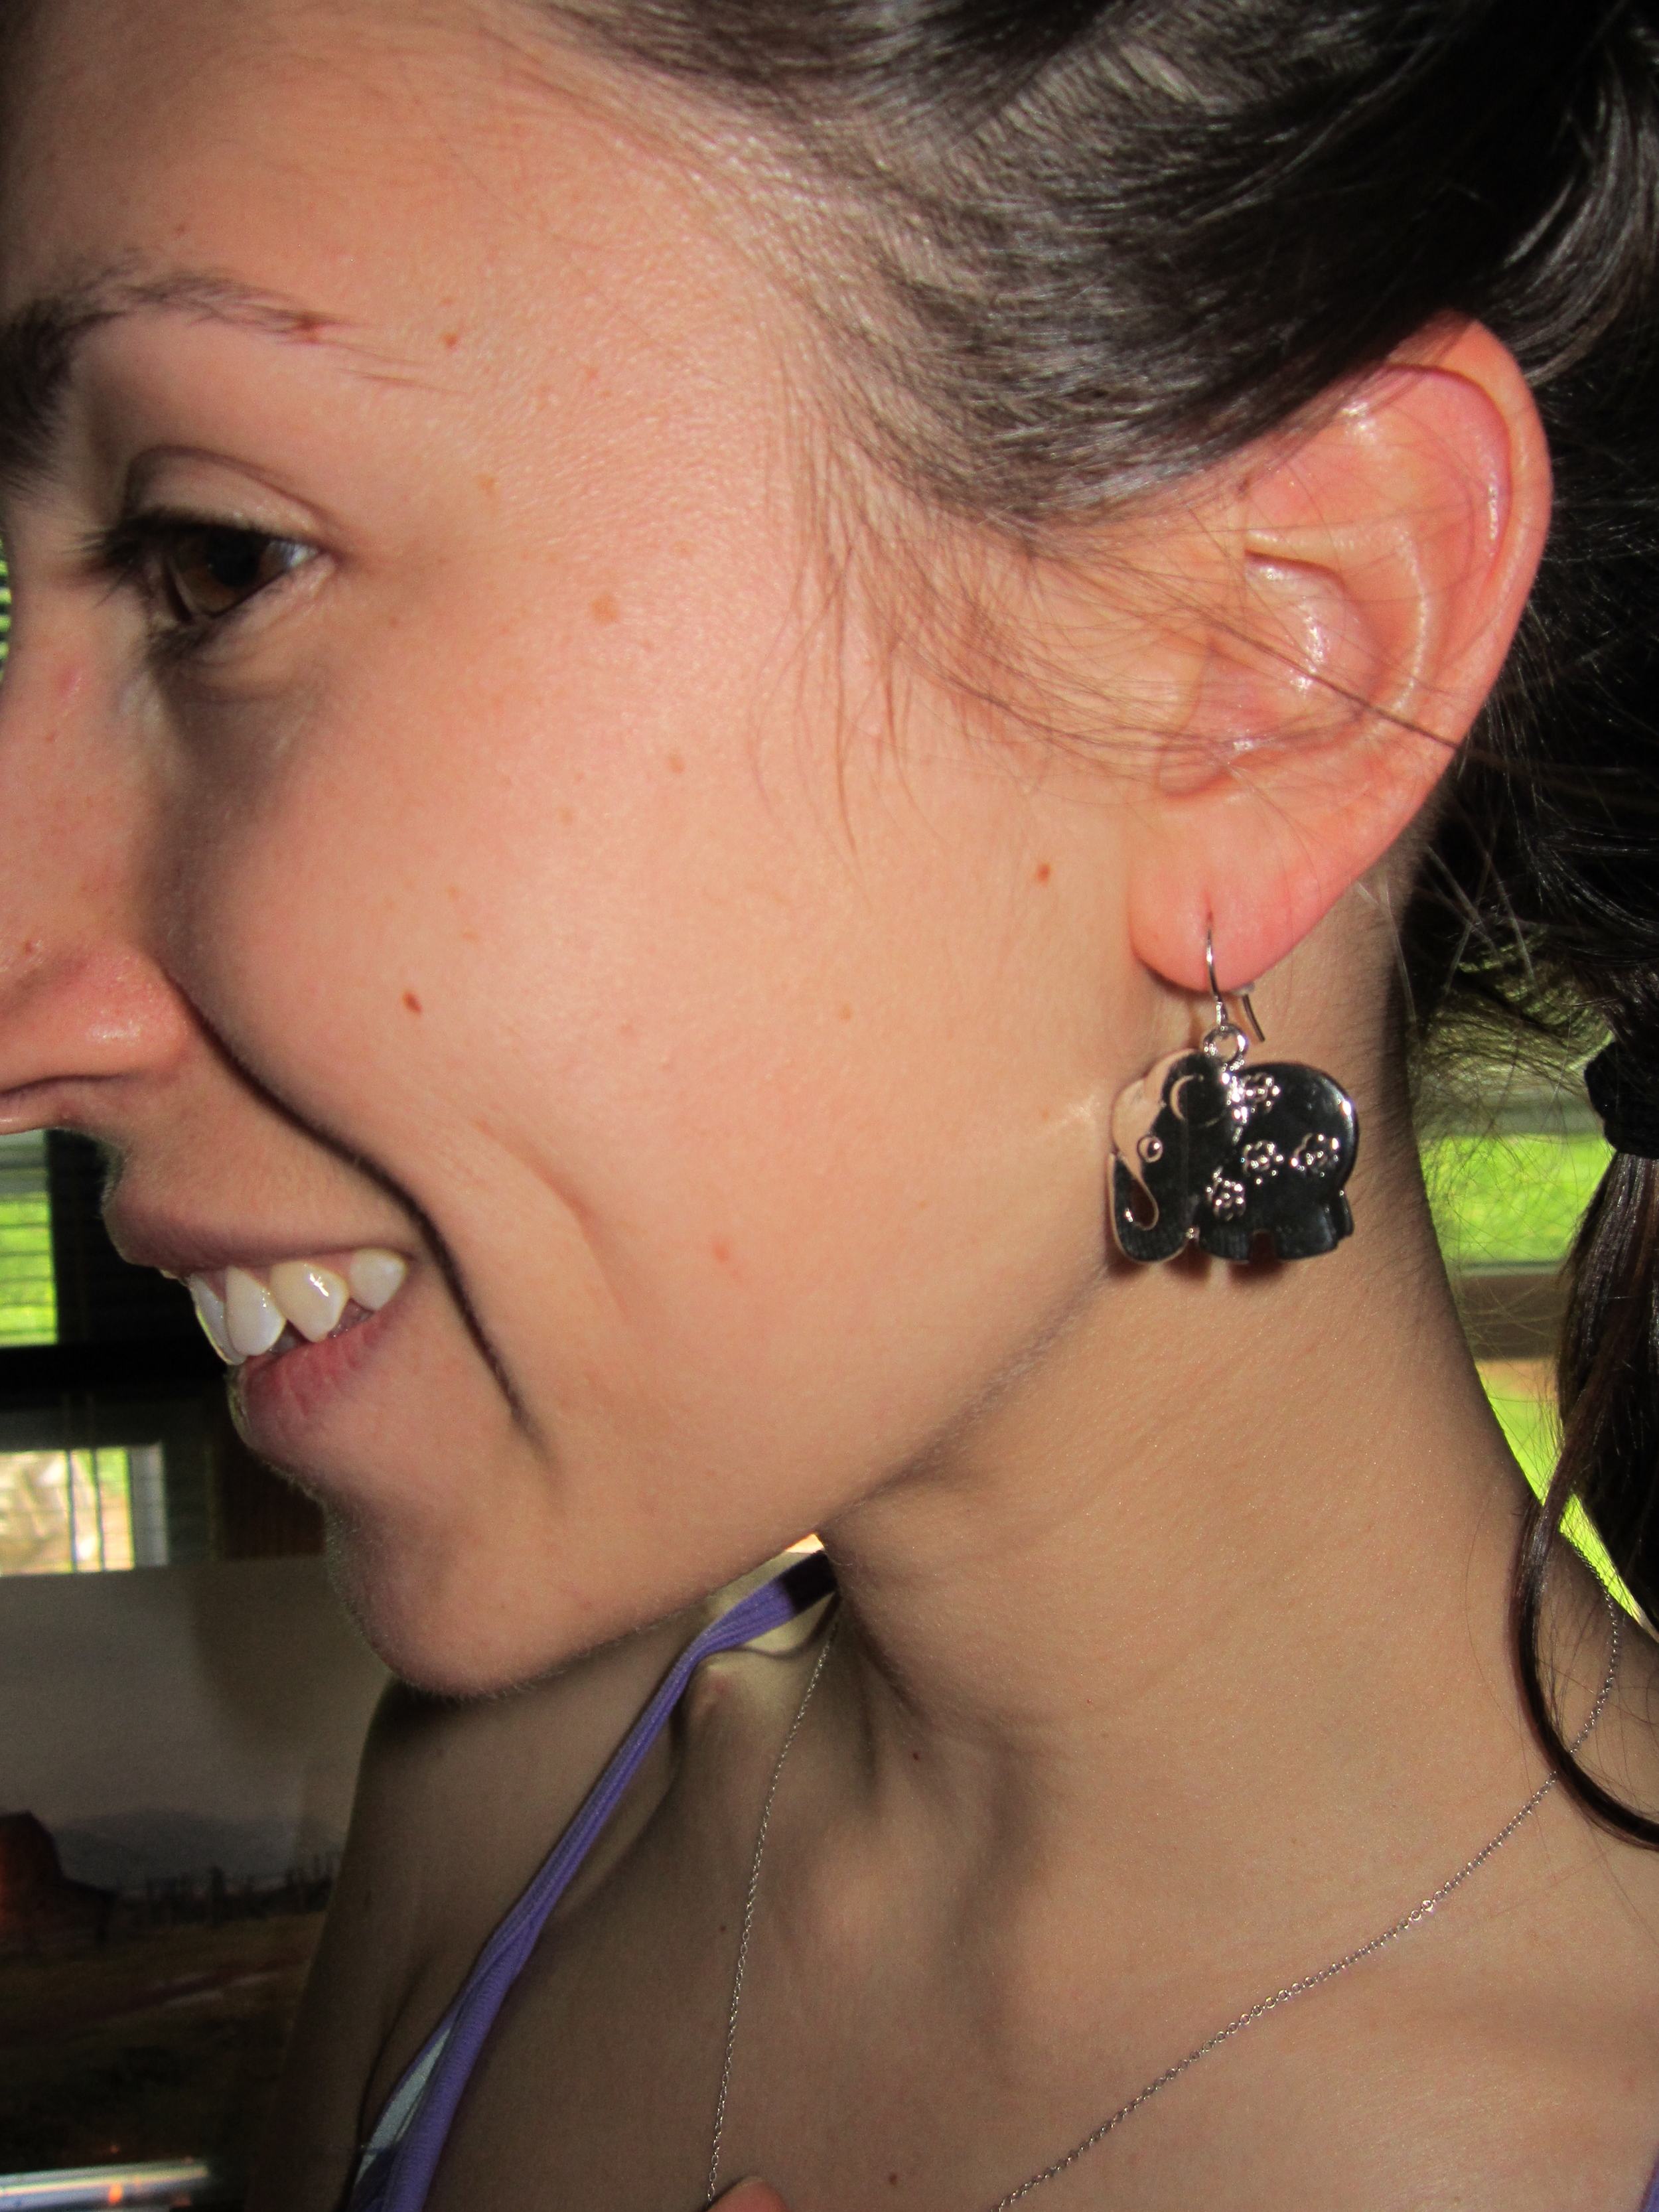 Elephant earrings!!!